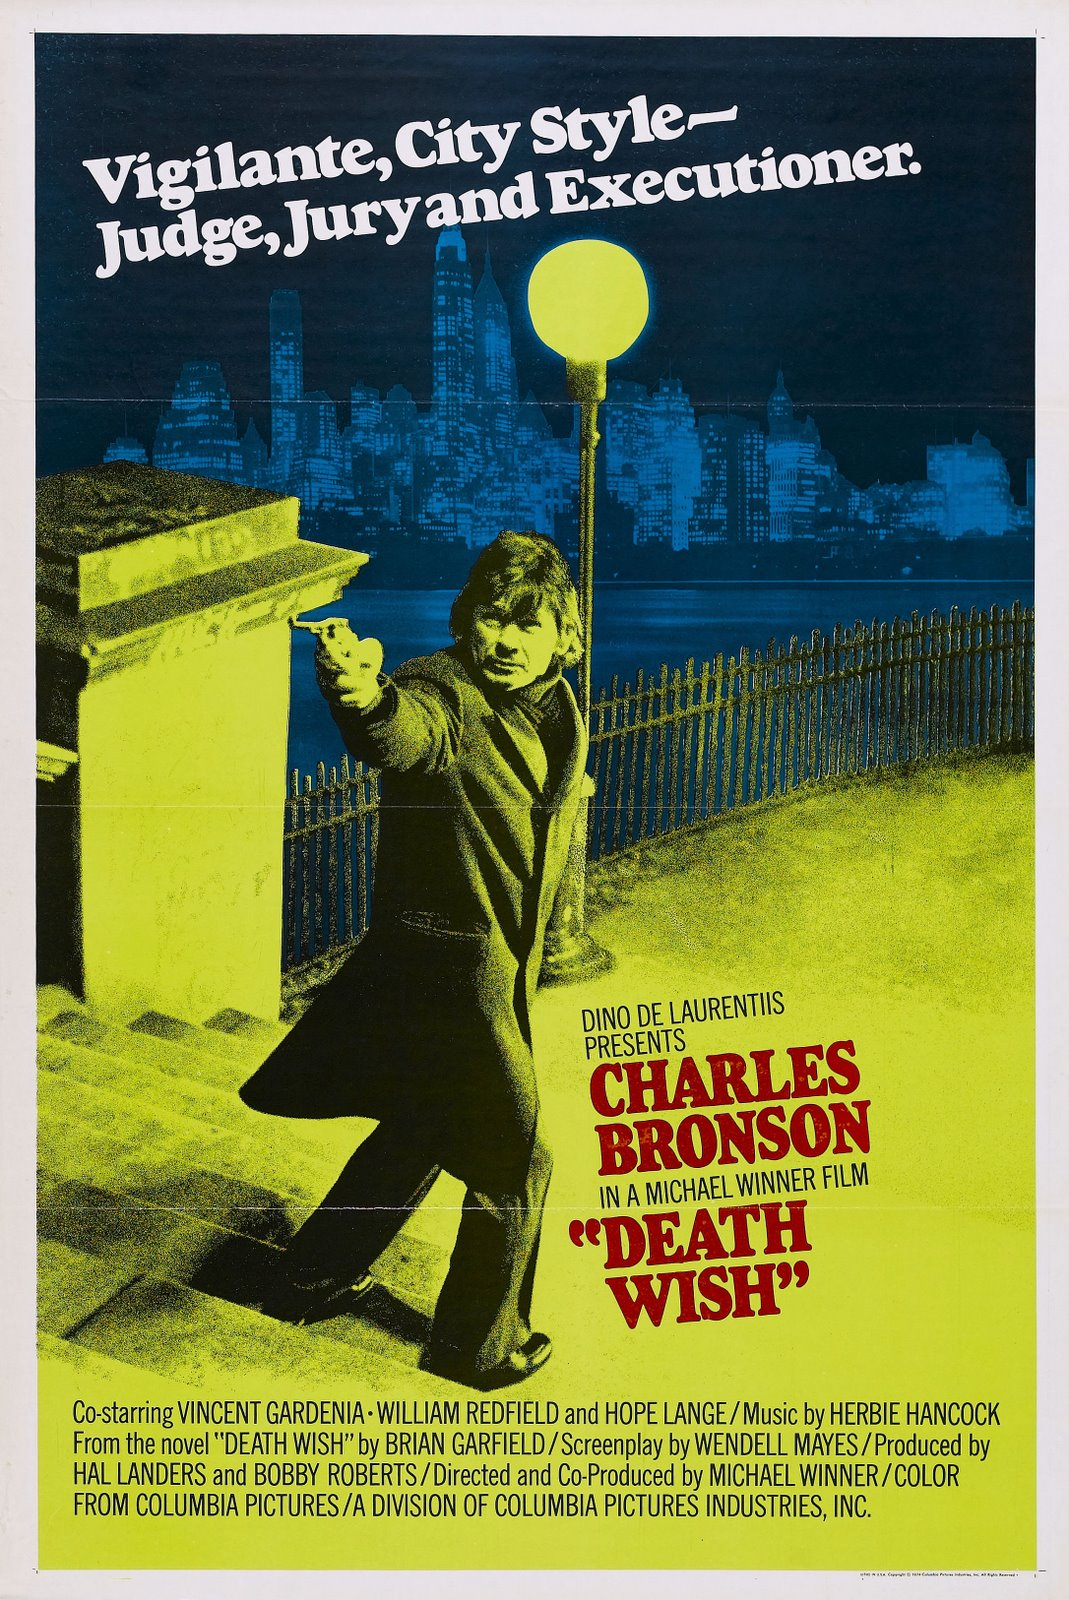 death wish 1 full movie - Video Search Engine at Search.com